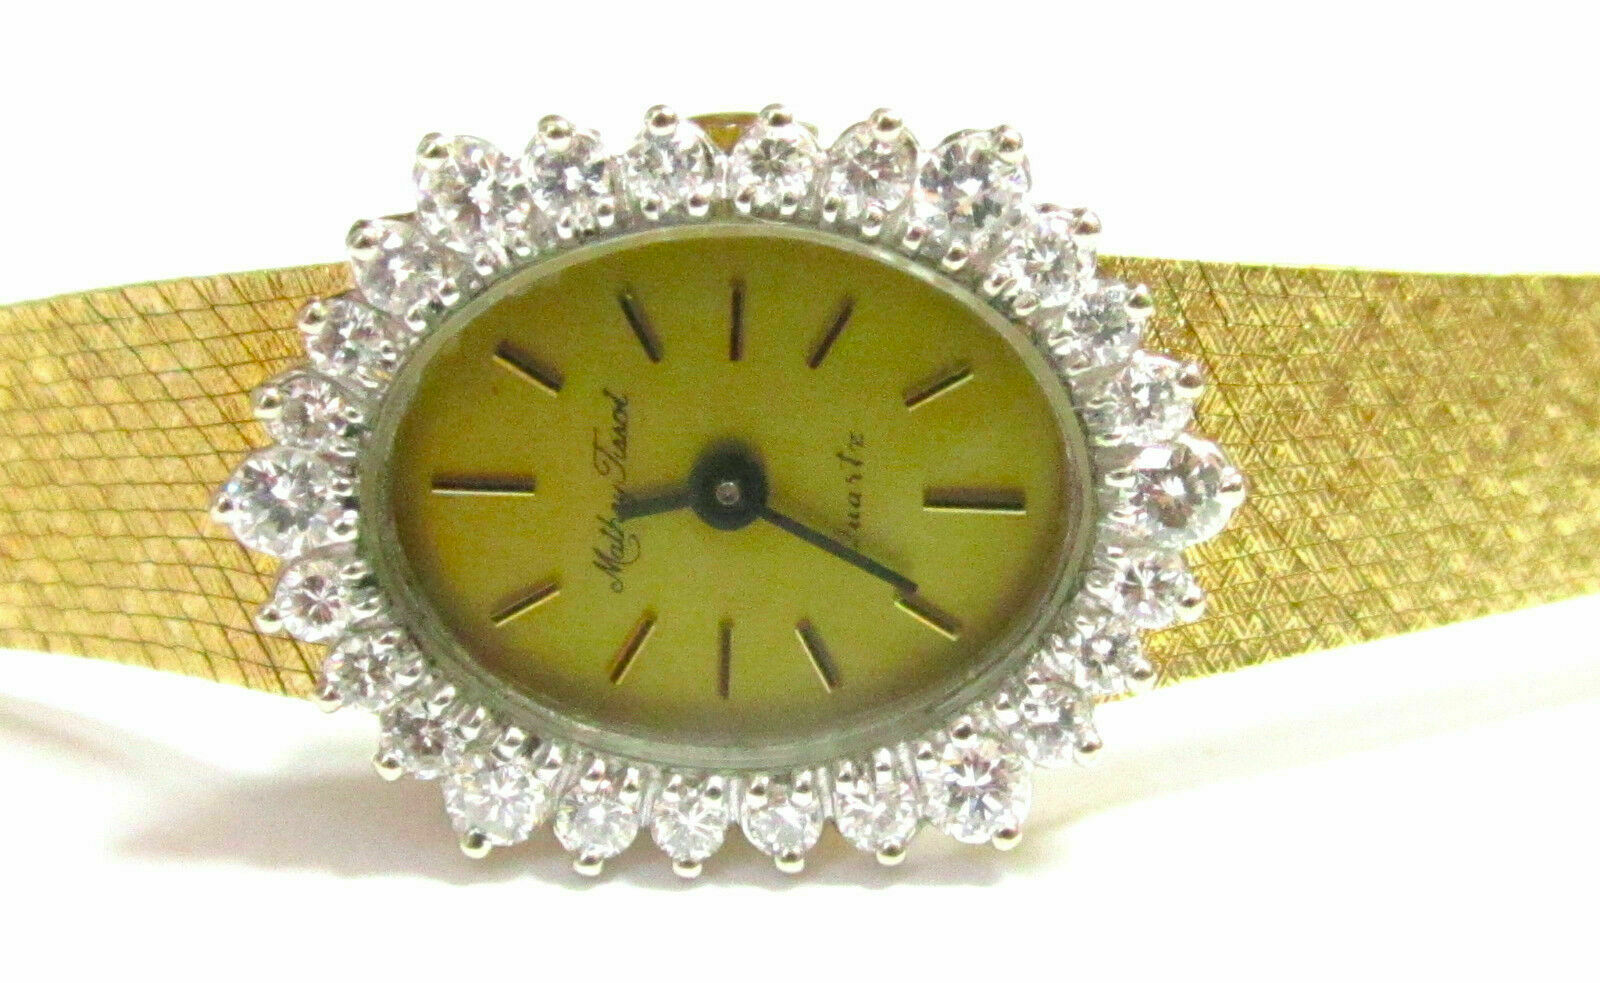 Vintage MATHEY TISSOT 1.80 DIAMOND WATCH 14KT YELLOW GOLD AUTHENTIC